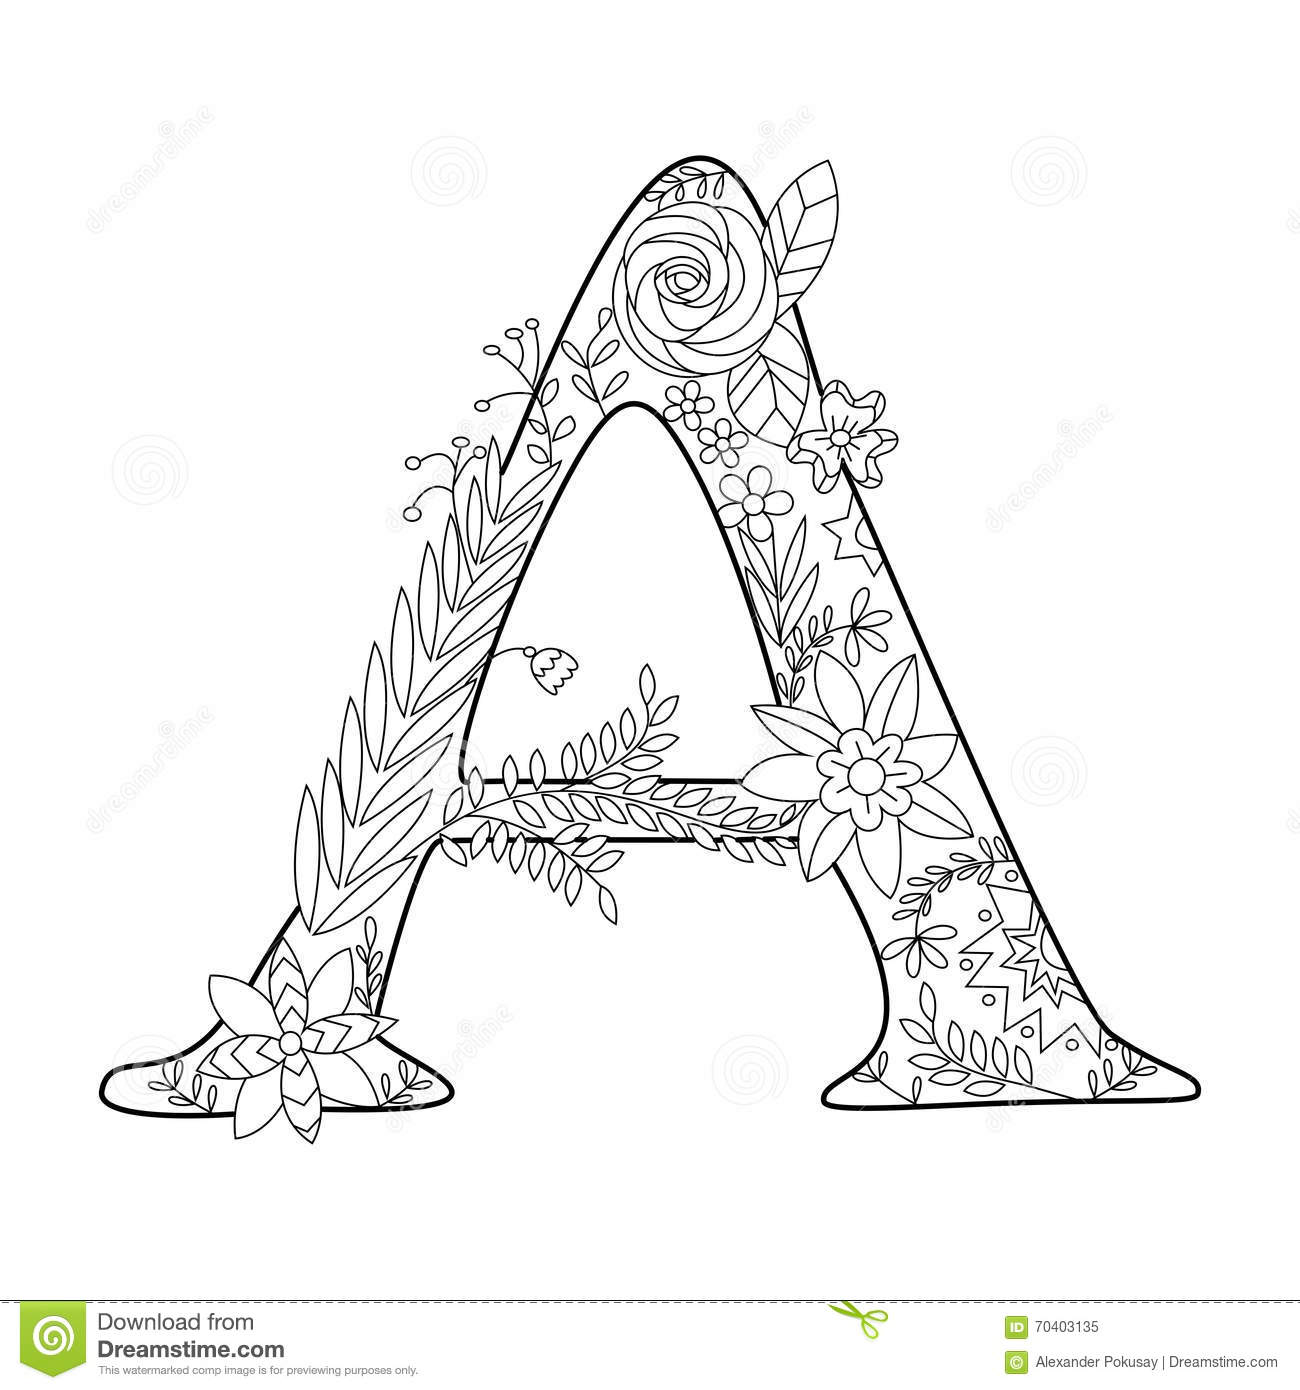 Coloring pictures for adults letters - Letter A Coloring Book For Adults Vector Stock Vector Image